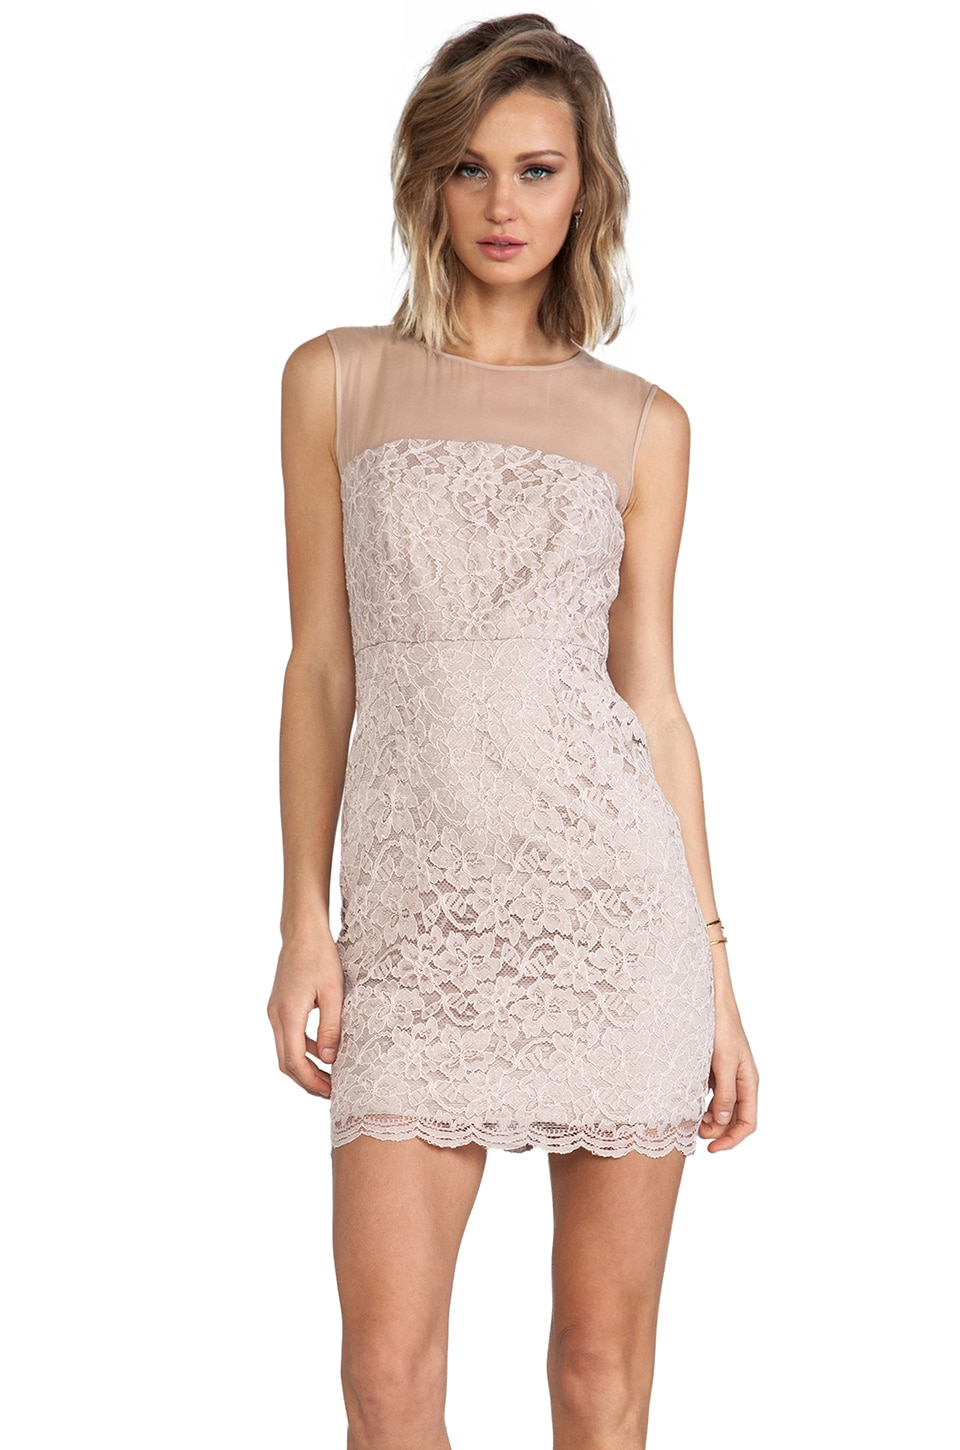 Diane von Furstenberg Nisha Dress in Nude